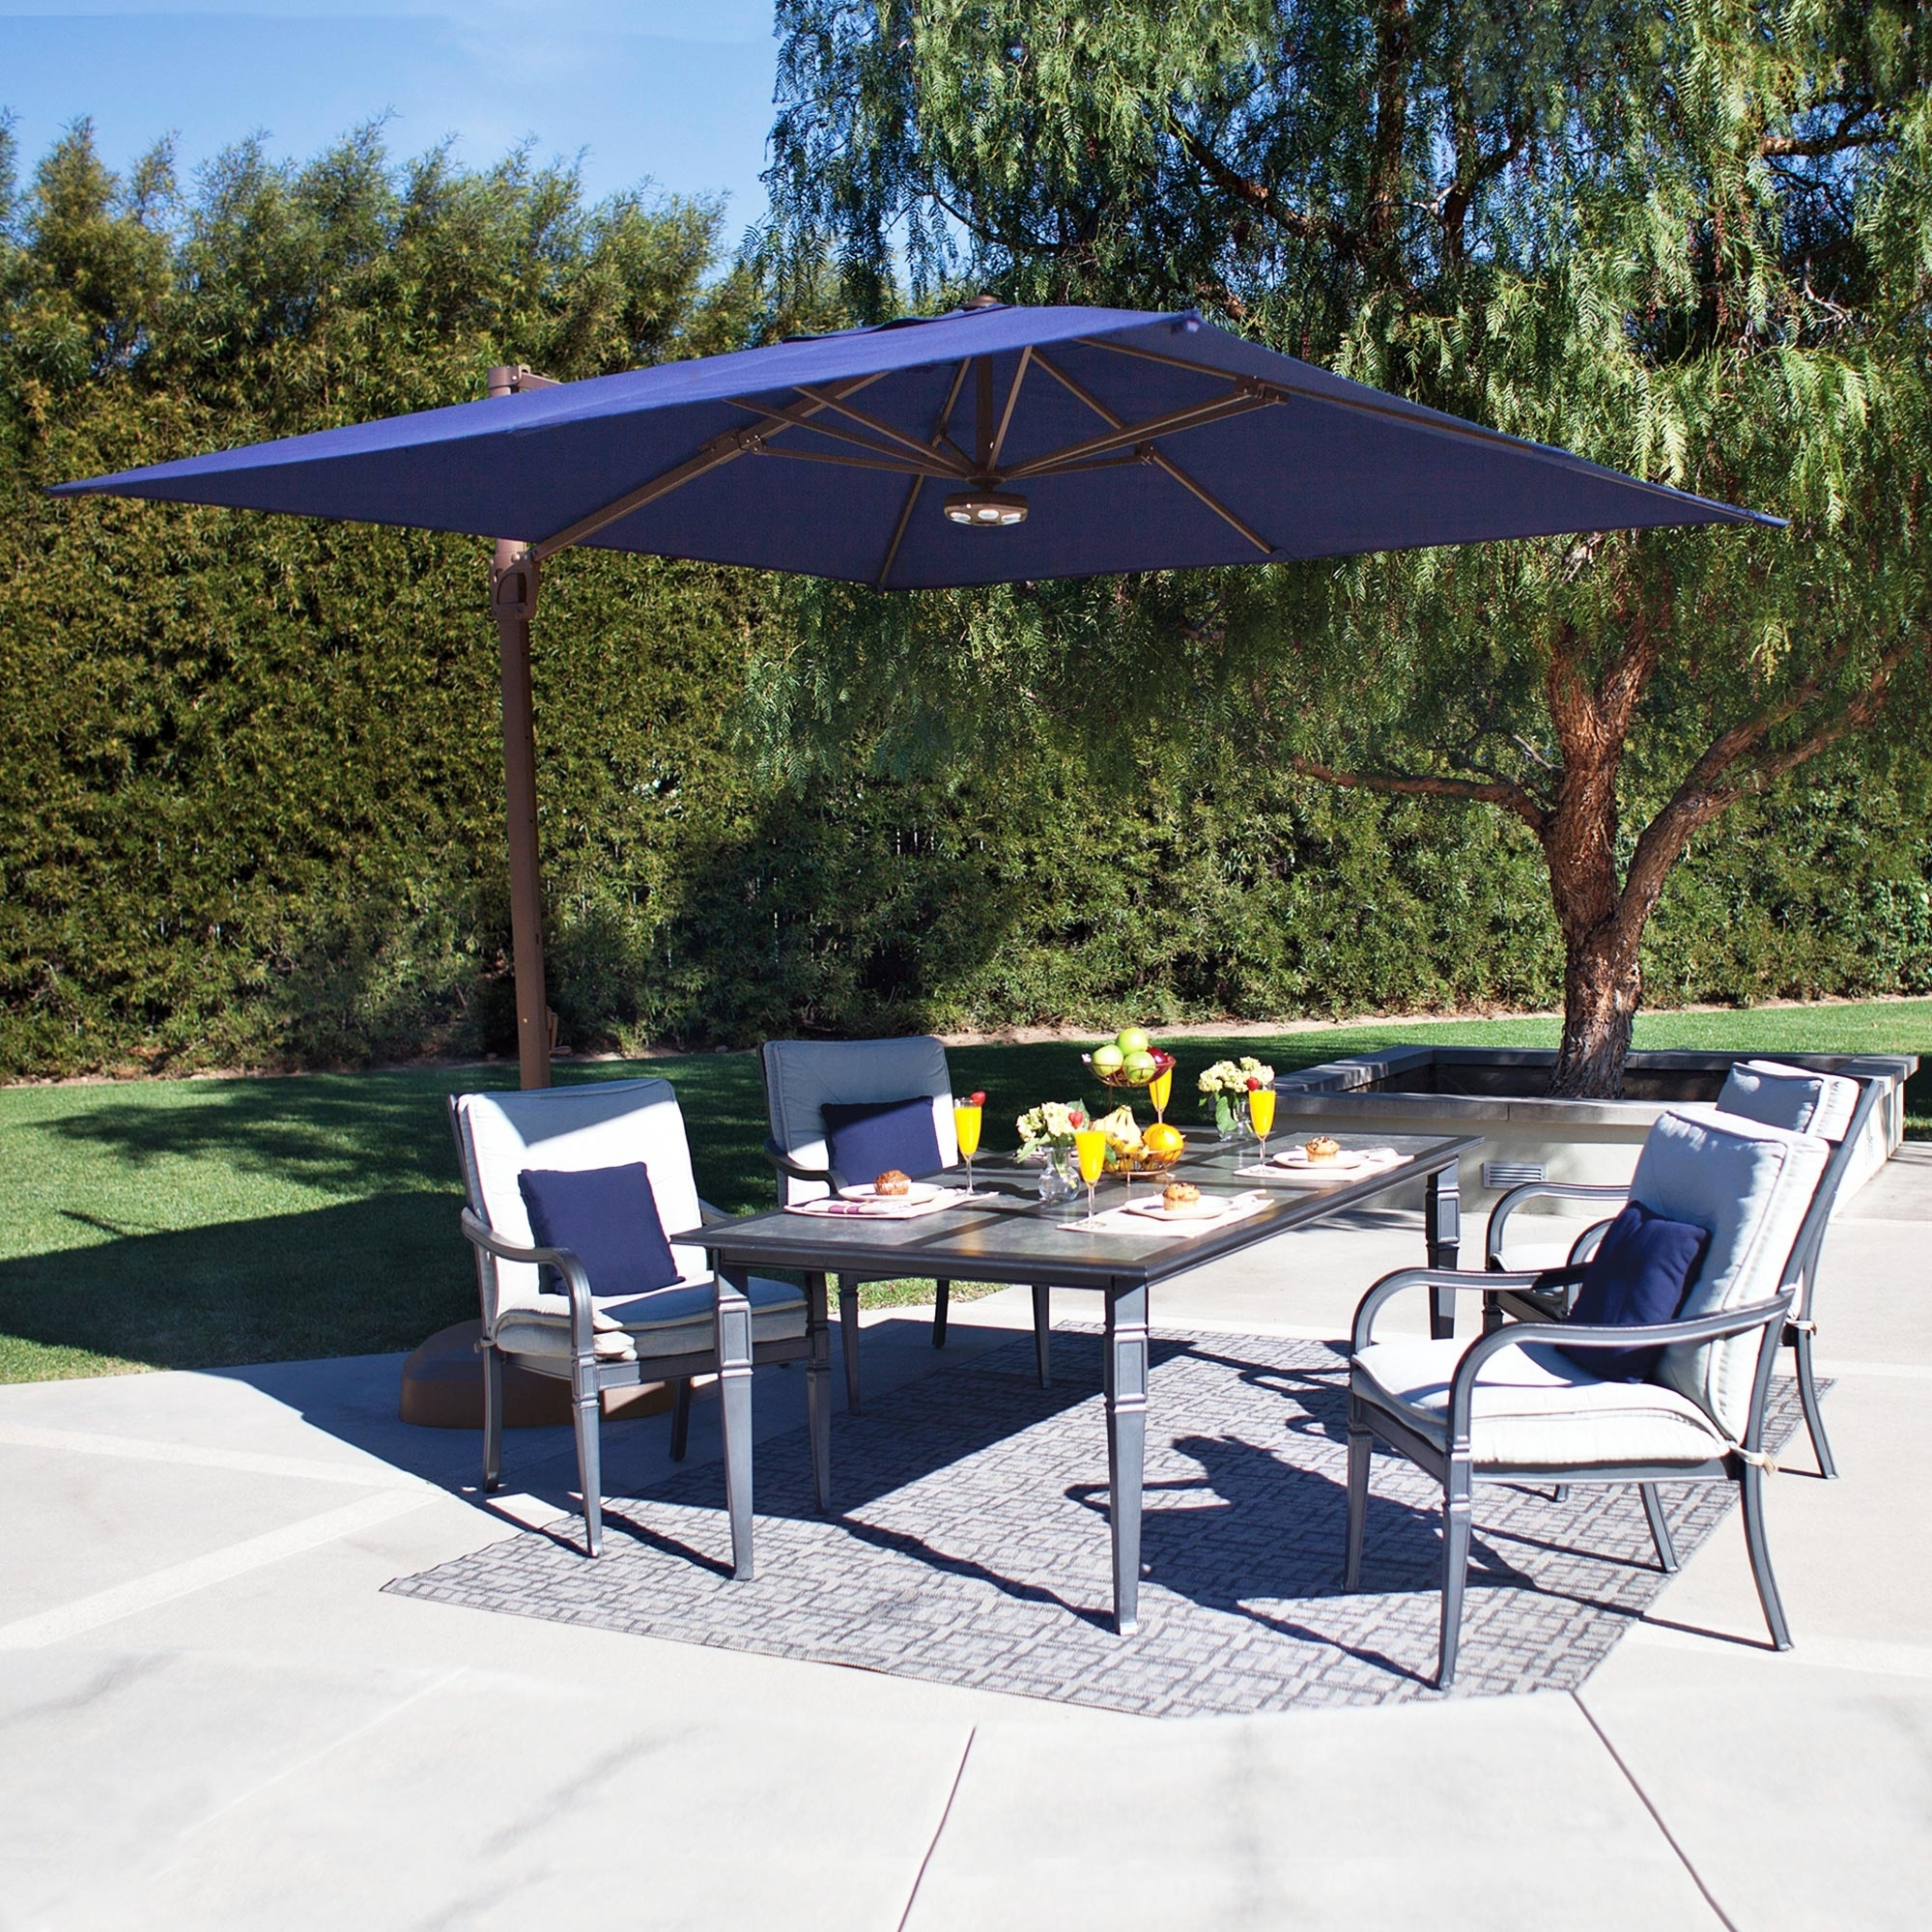 2019 Square Sunbrella Patio Umbrellas Regarding Bali 10 Ft. Square Sunbrella Cantilever Umbrella With Cross Base (Gallery 17 of 20)